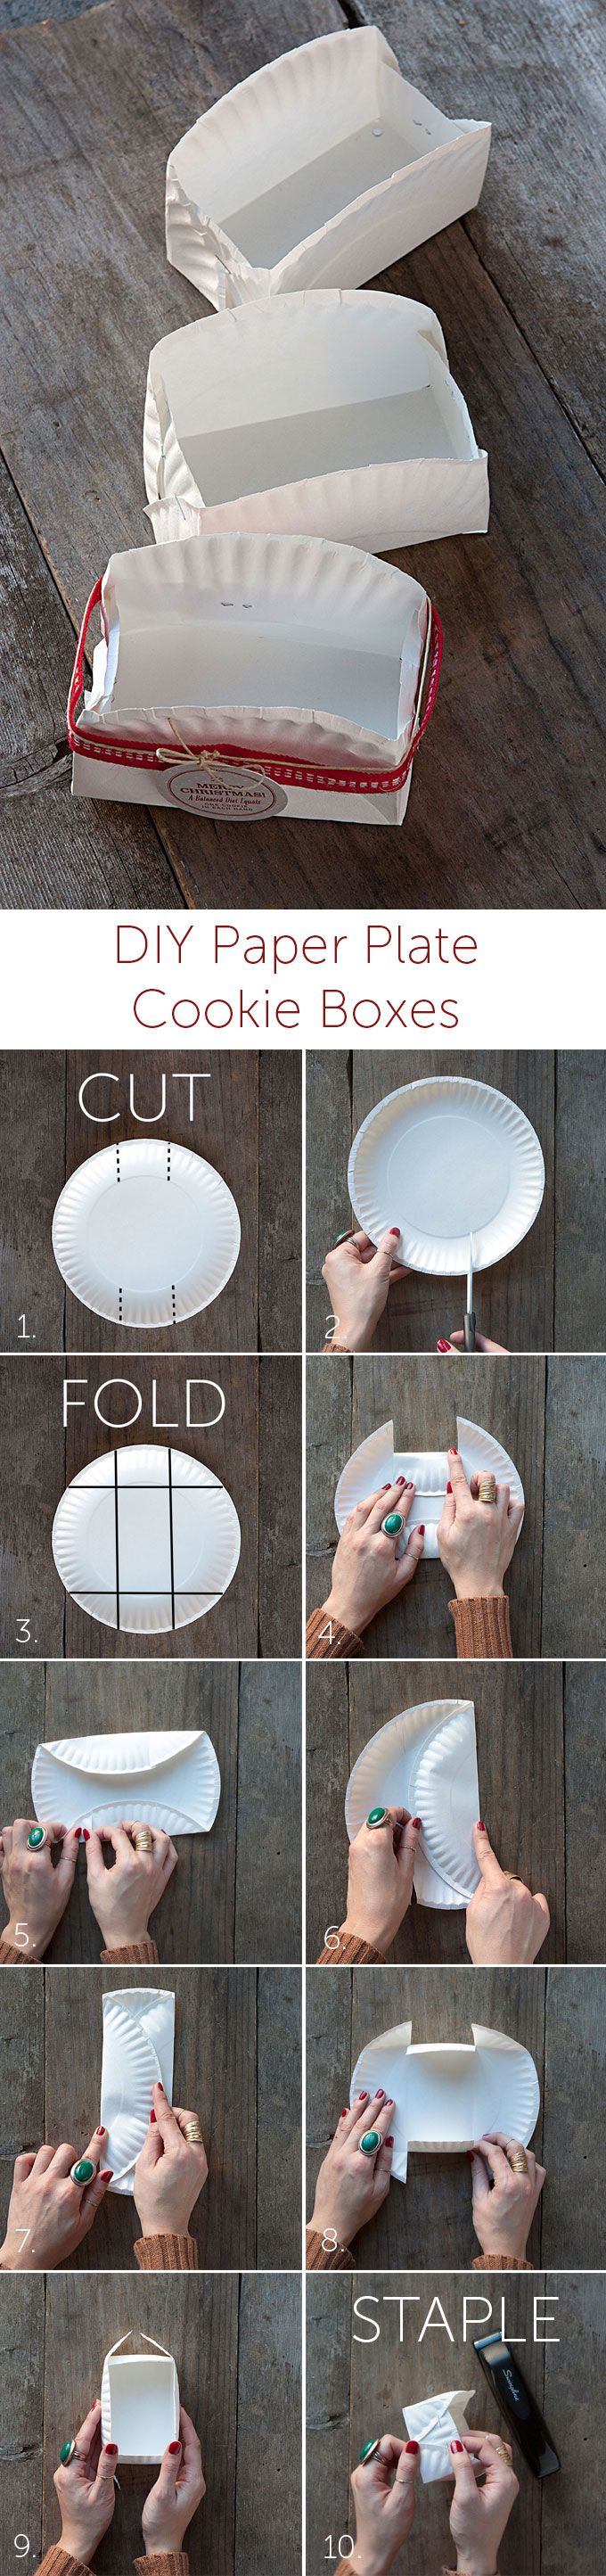 Holiday DIY Paper Plate Cookie Boxes Cookie box, Bake